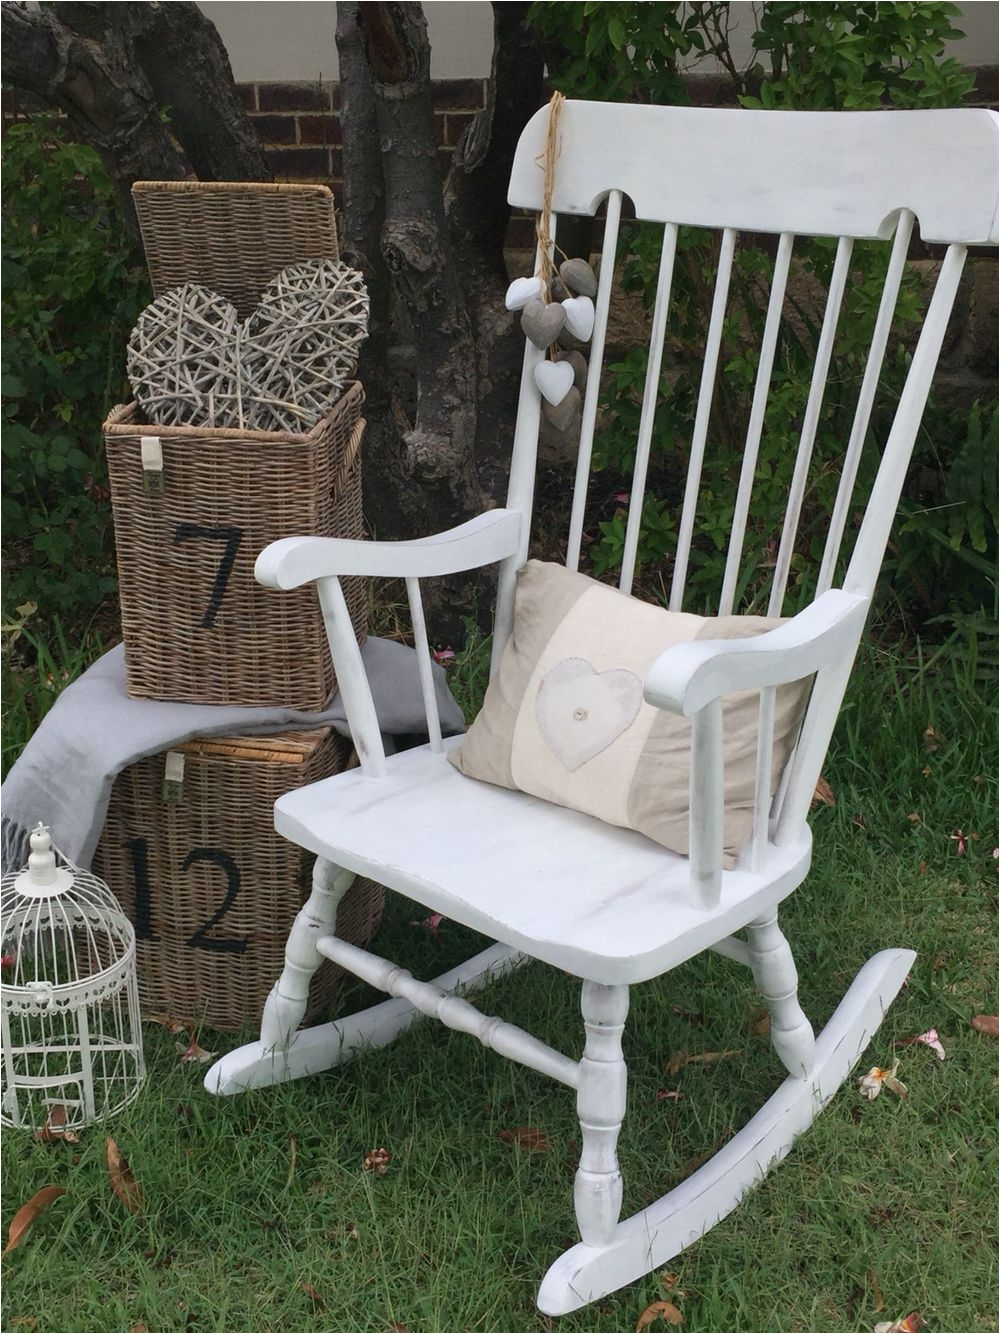 Pictures Of Antique Rocking Chairs Vintage Rocking Chair In Annie Sloan  Paloma Old White by the - Pictures Of Antique Rocking Chairs Vintage Rocking Chair In Annie